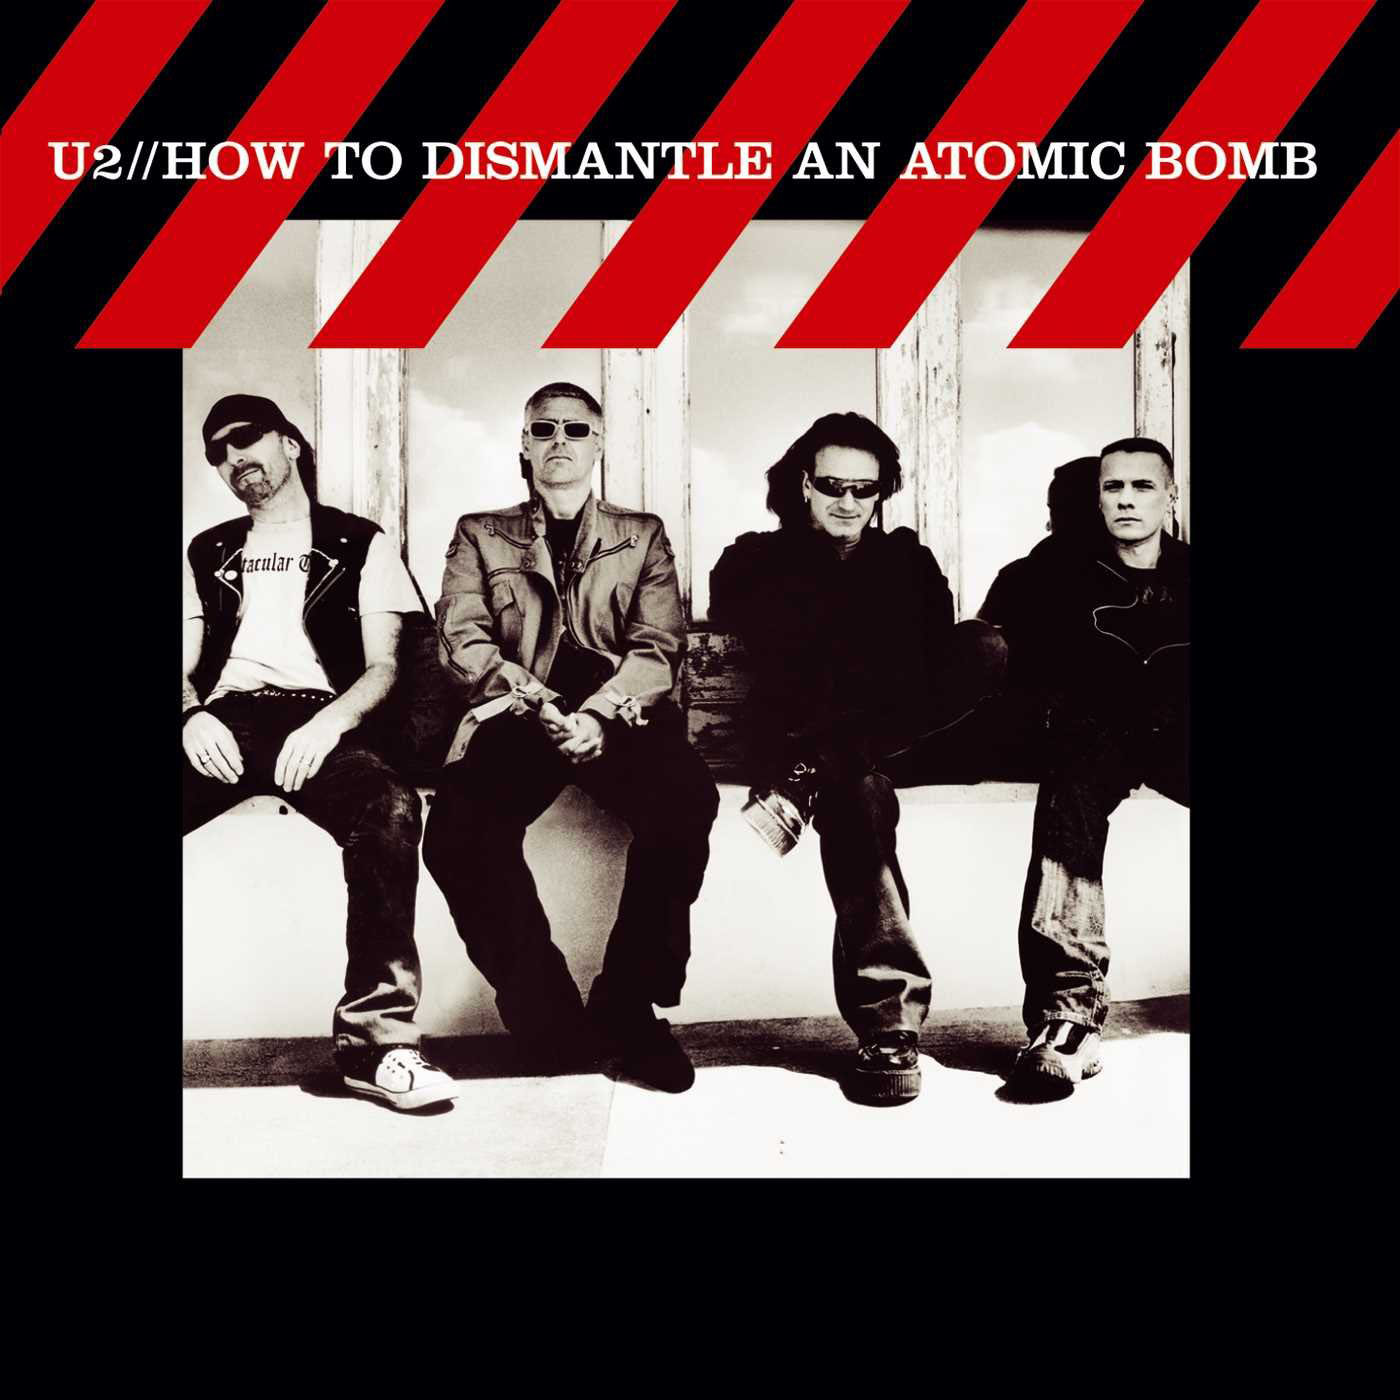 U2 - How to Dismantle an Atomic Bomb - Album Cover